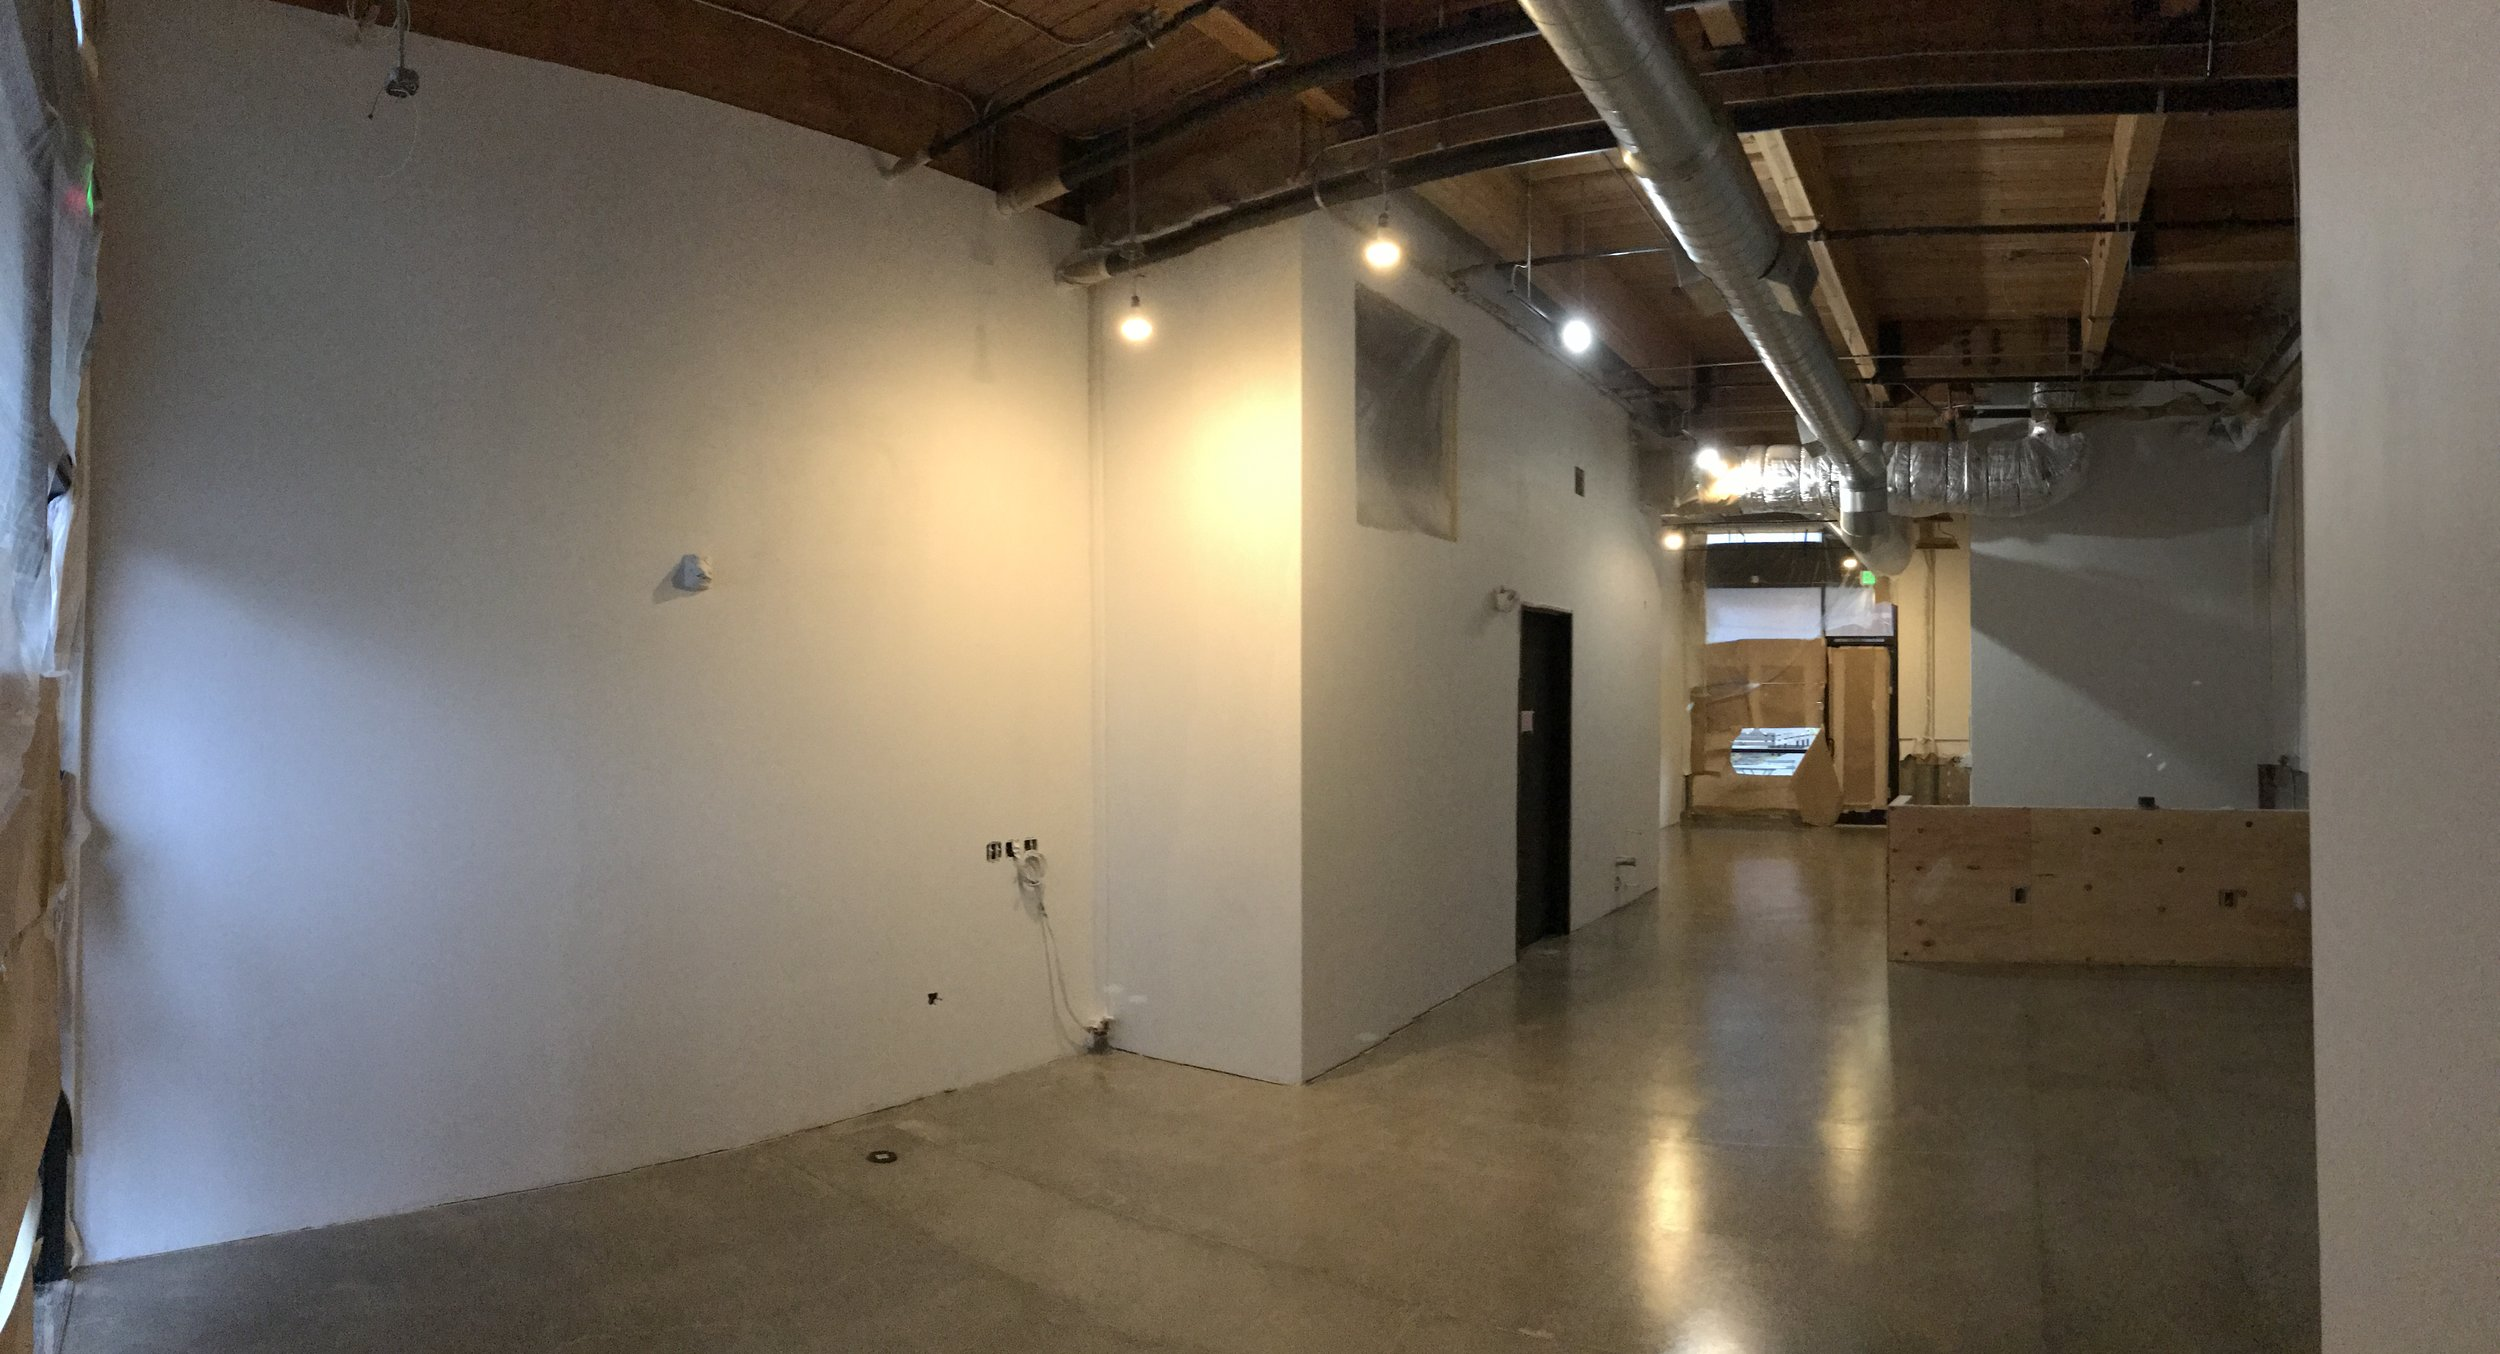 And now we have shiny floors!